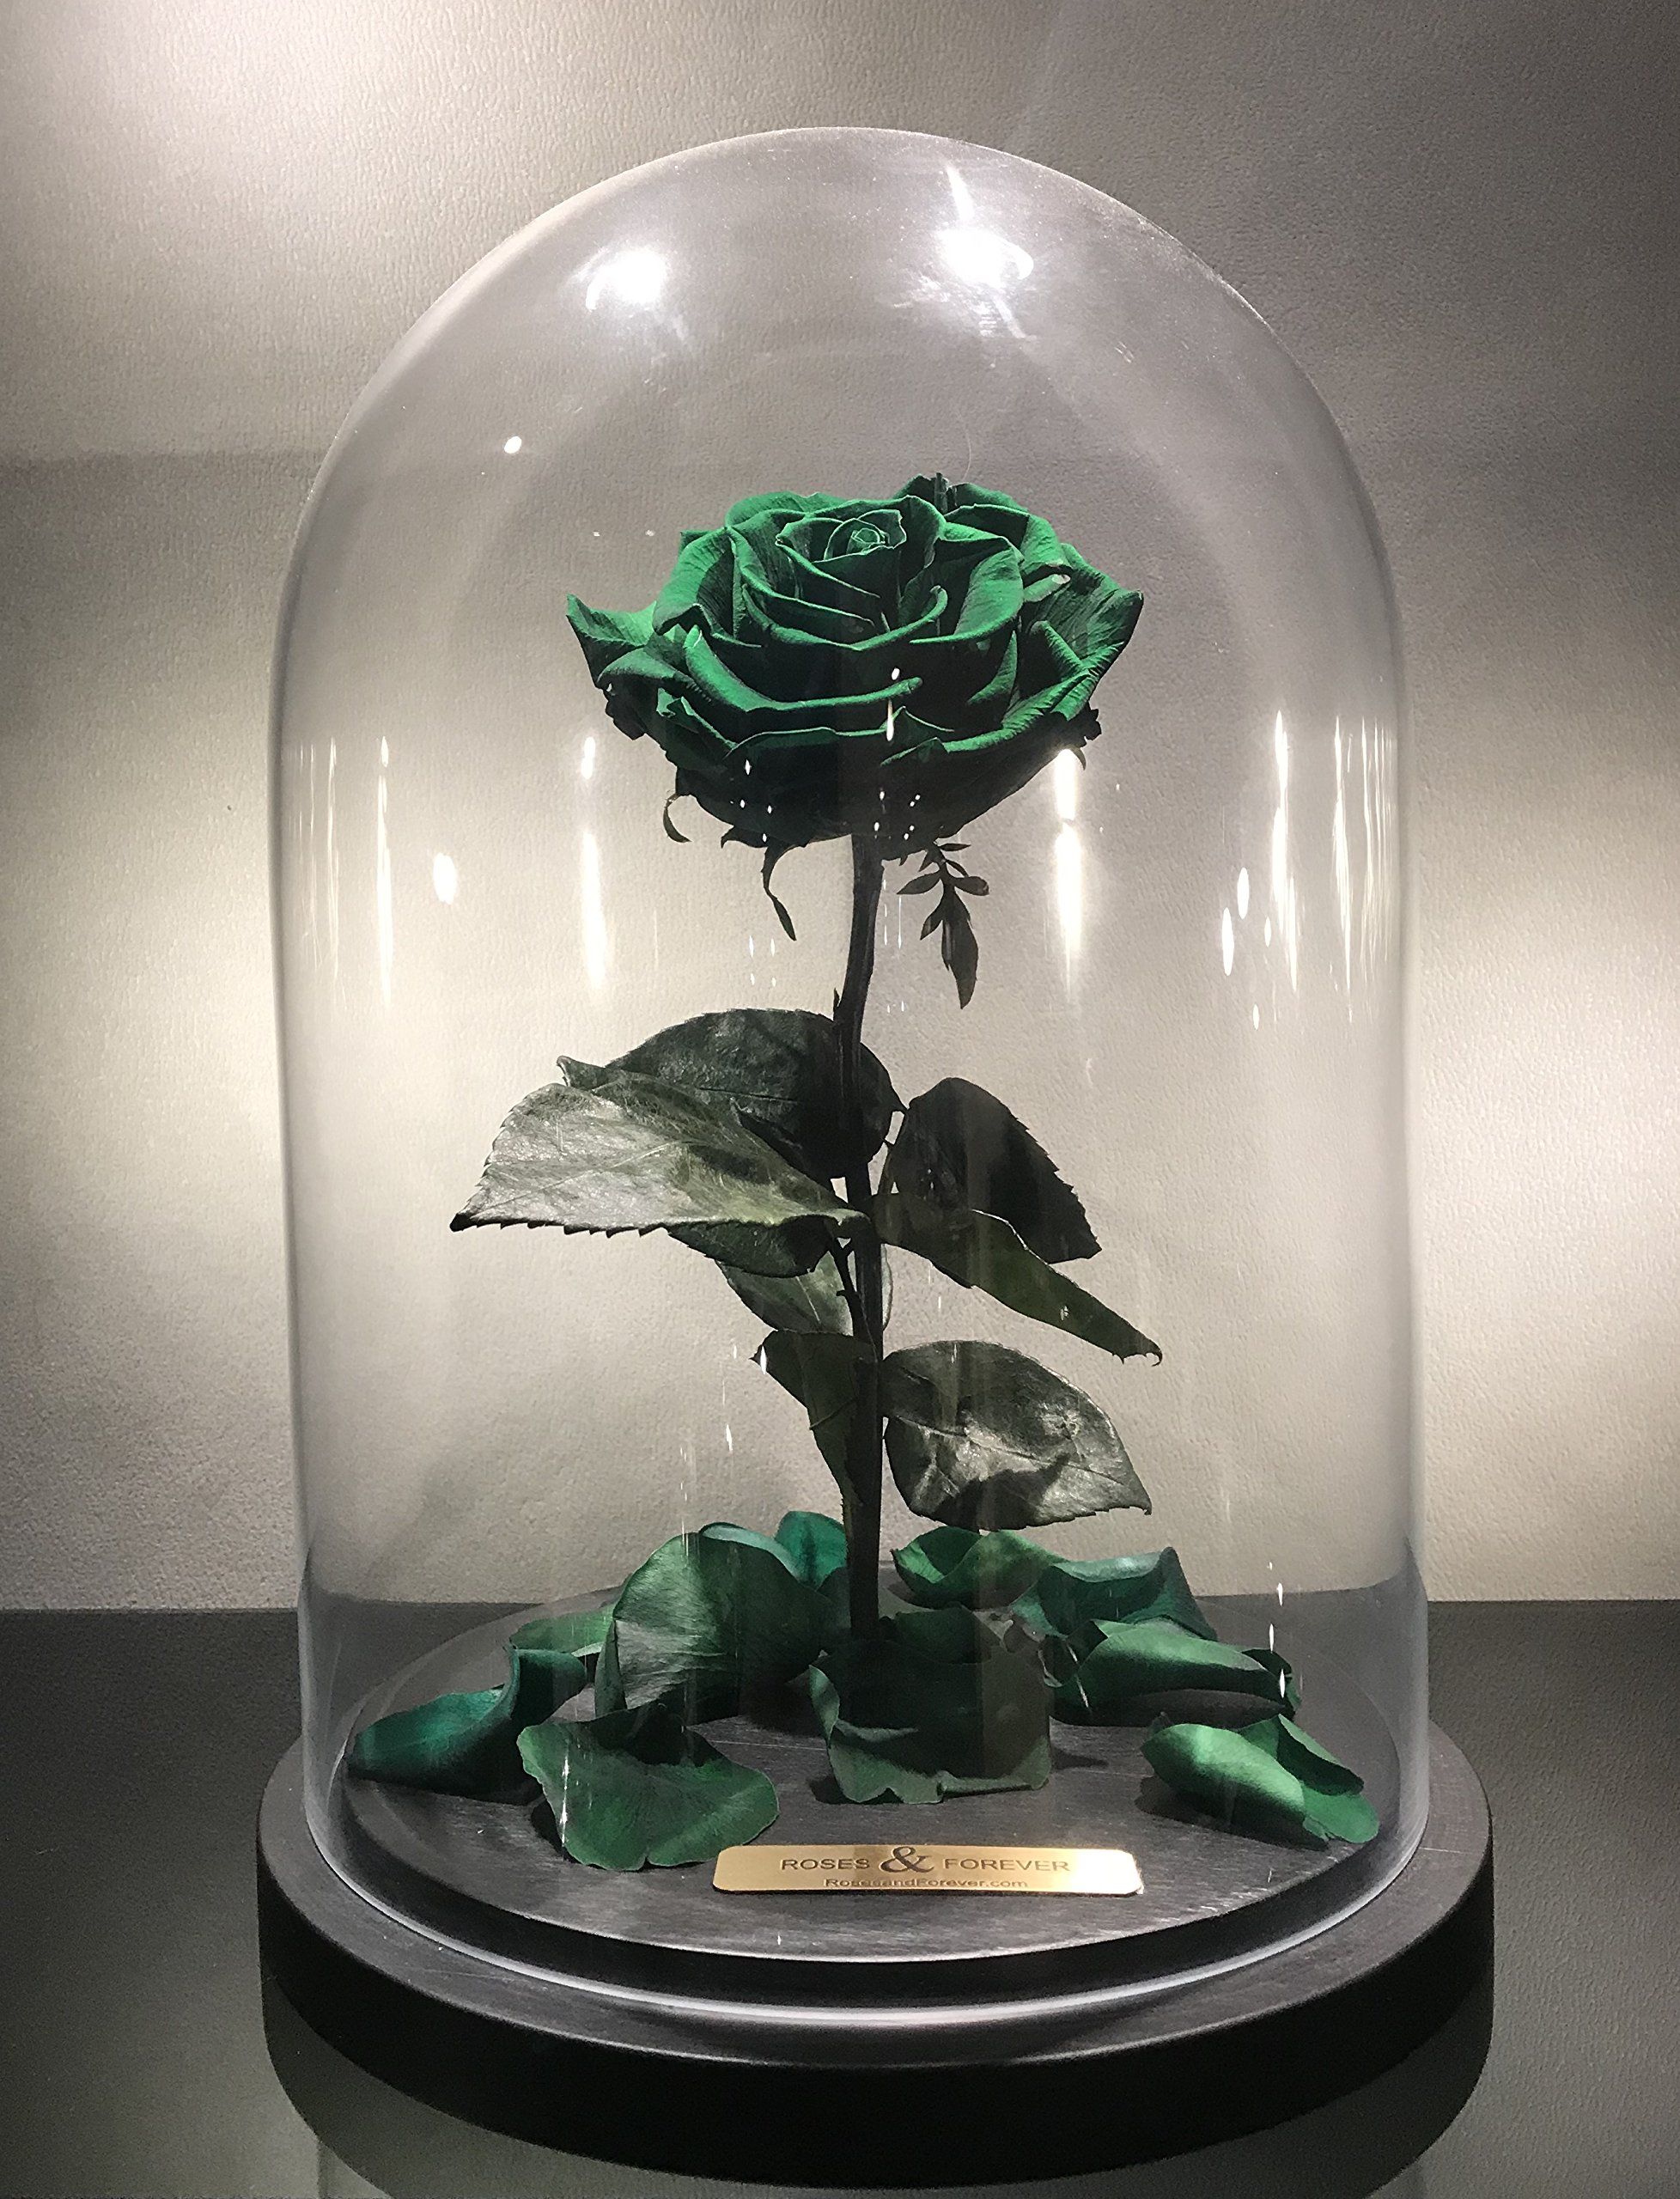 Bella Rose (Forest Green) Fresh Cut Preserved Rose in Glass Cloche. SHE WILL LOVE IT - World's Longest Lasting Roses by Roses & Forever LLC (Image #3)